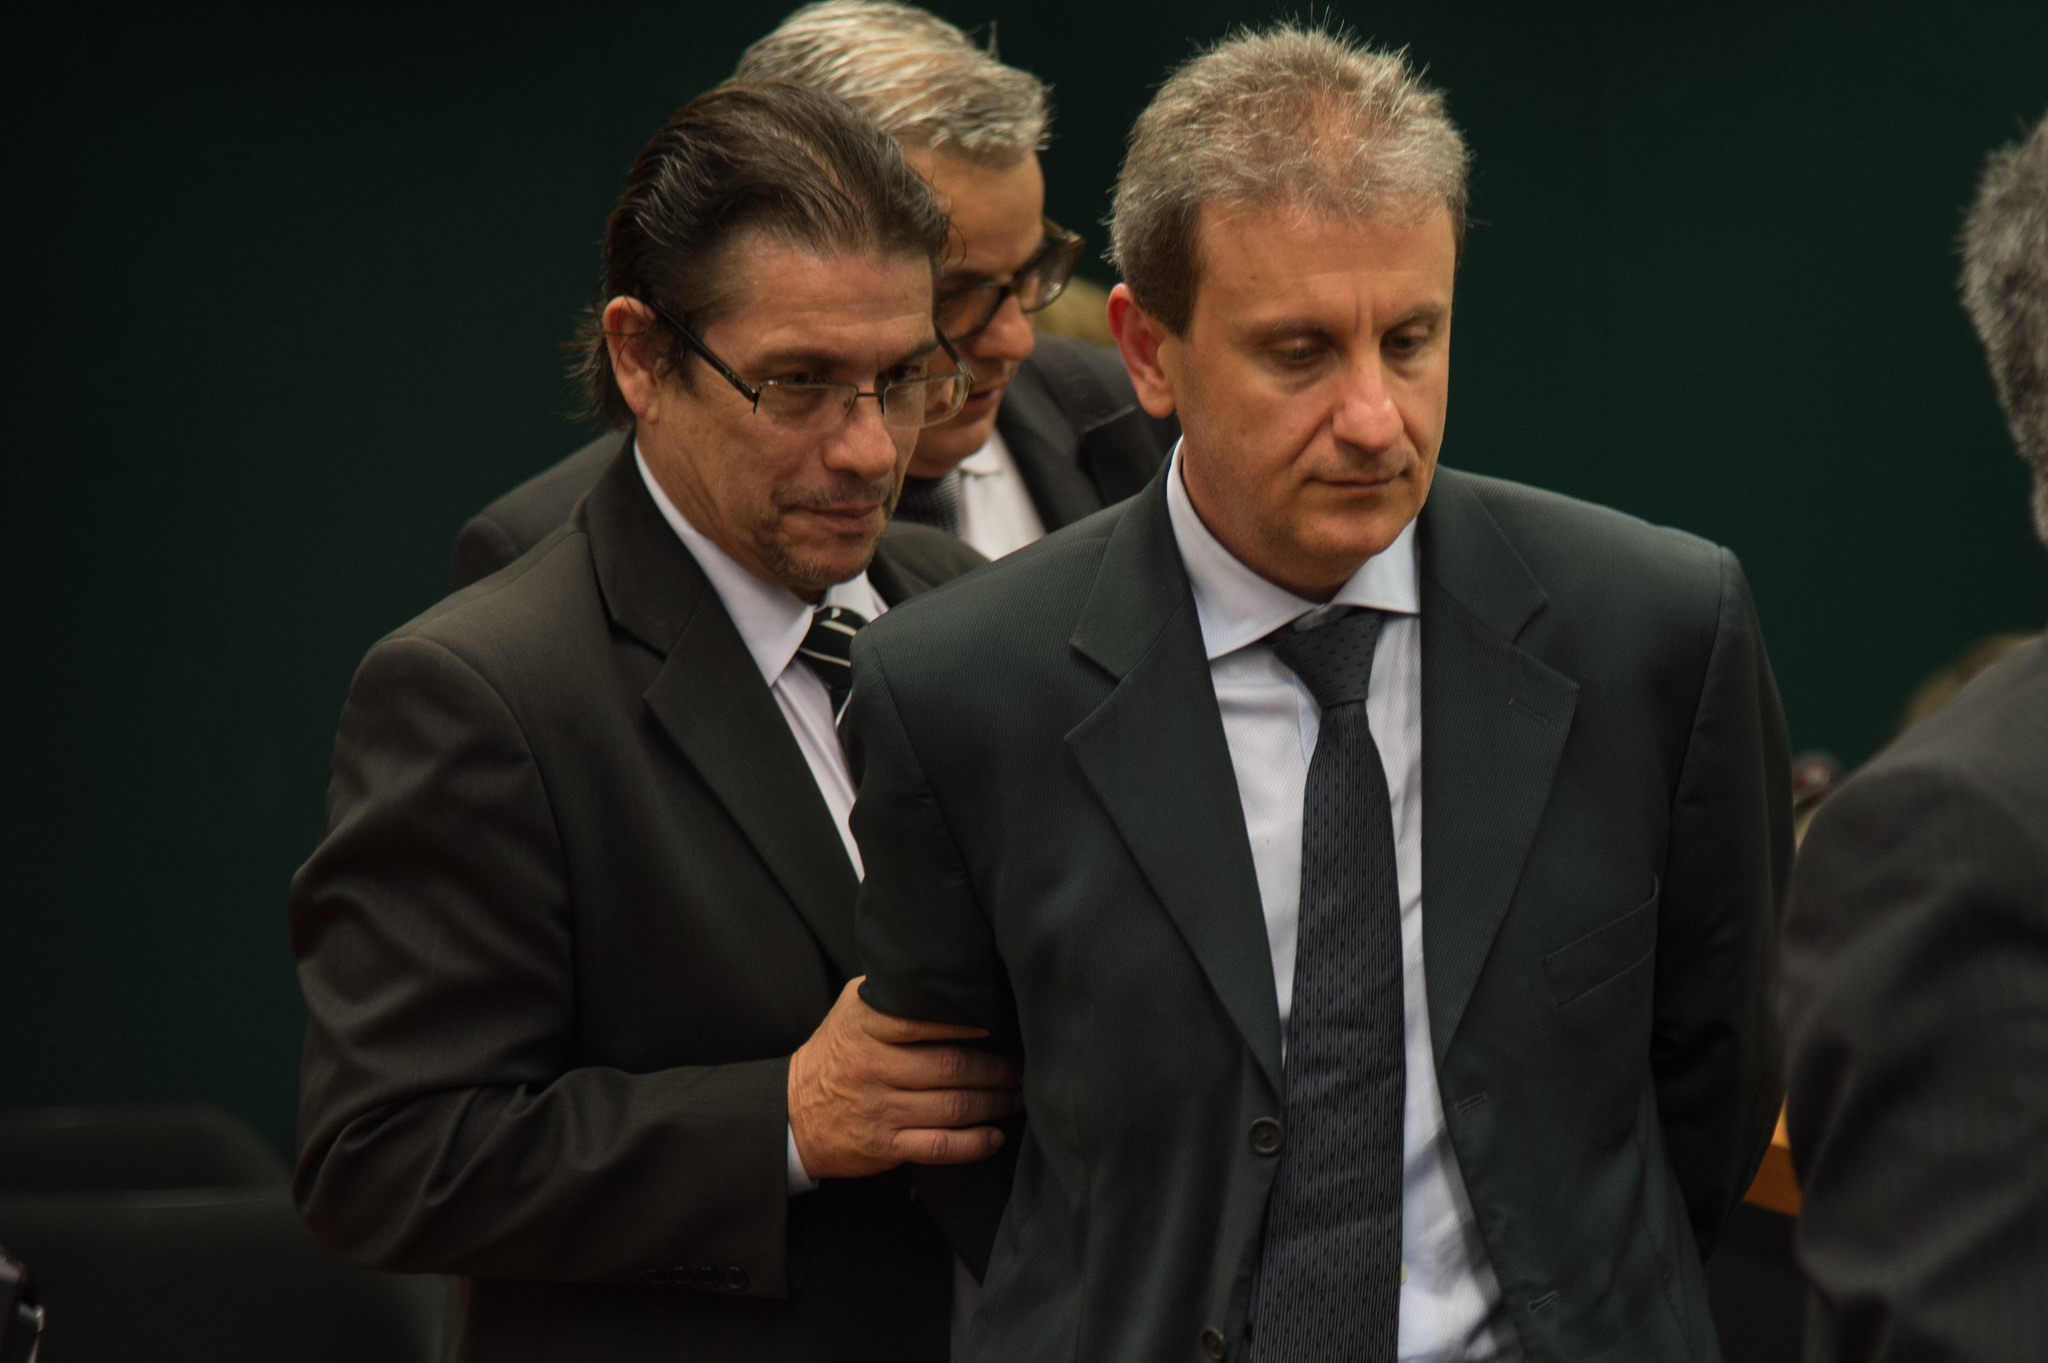 The agents linked to the Petrobras corruption scandal